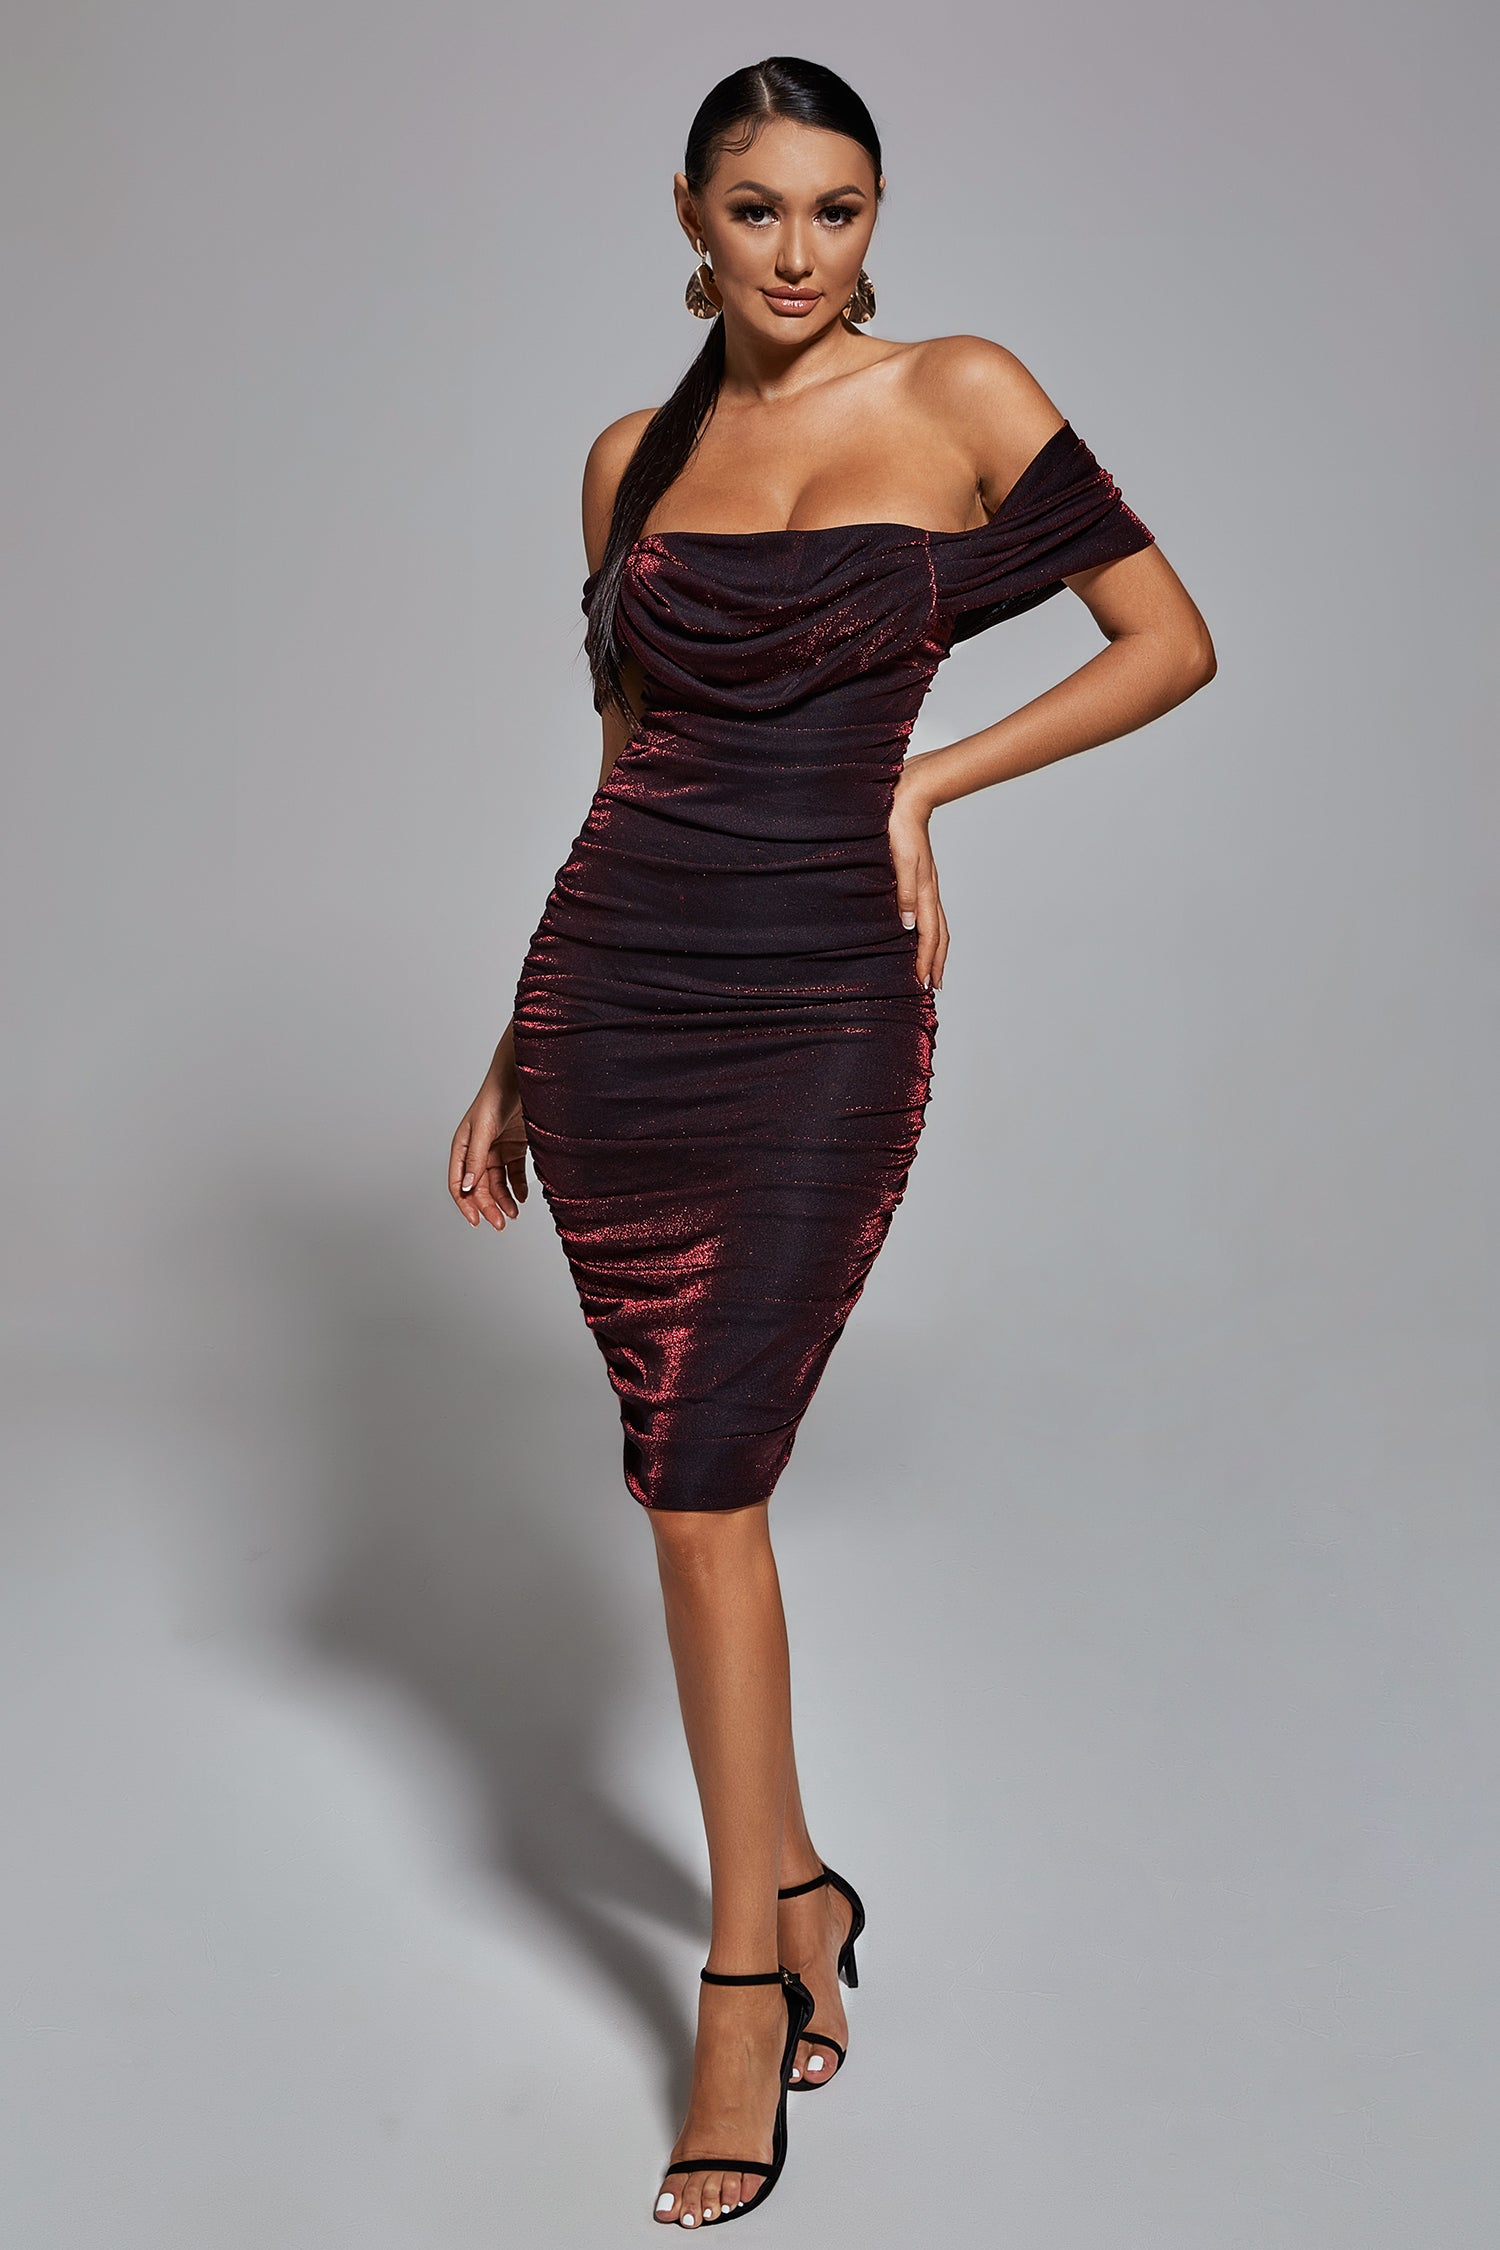 Octavia Sparkle Midi Dress - Wine